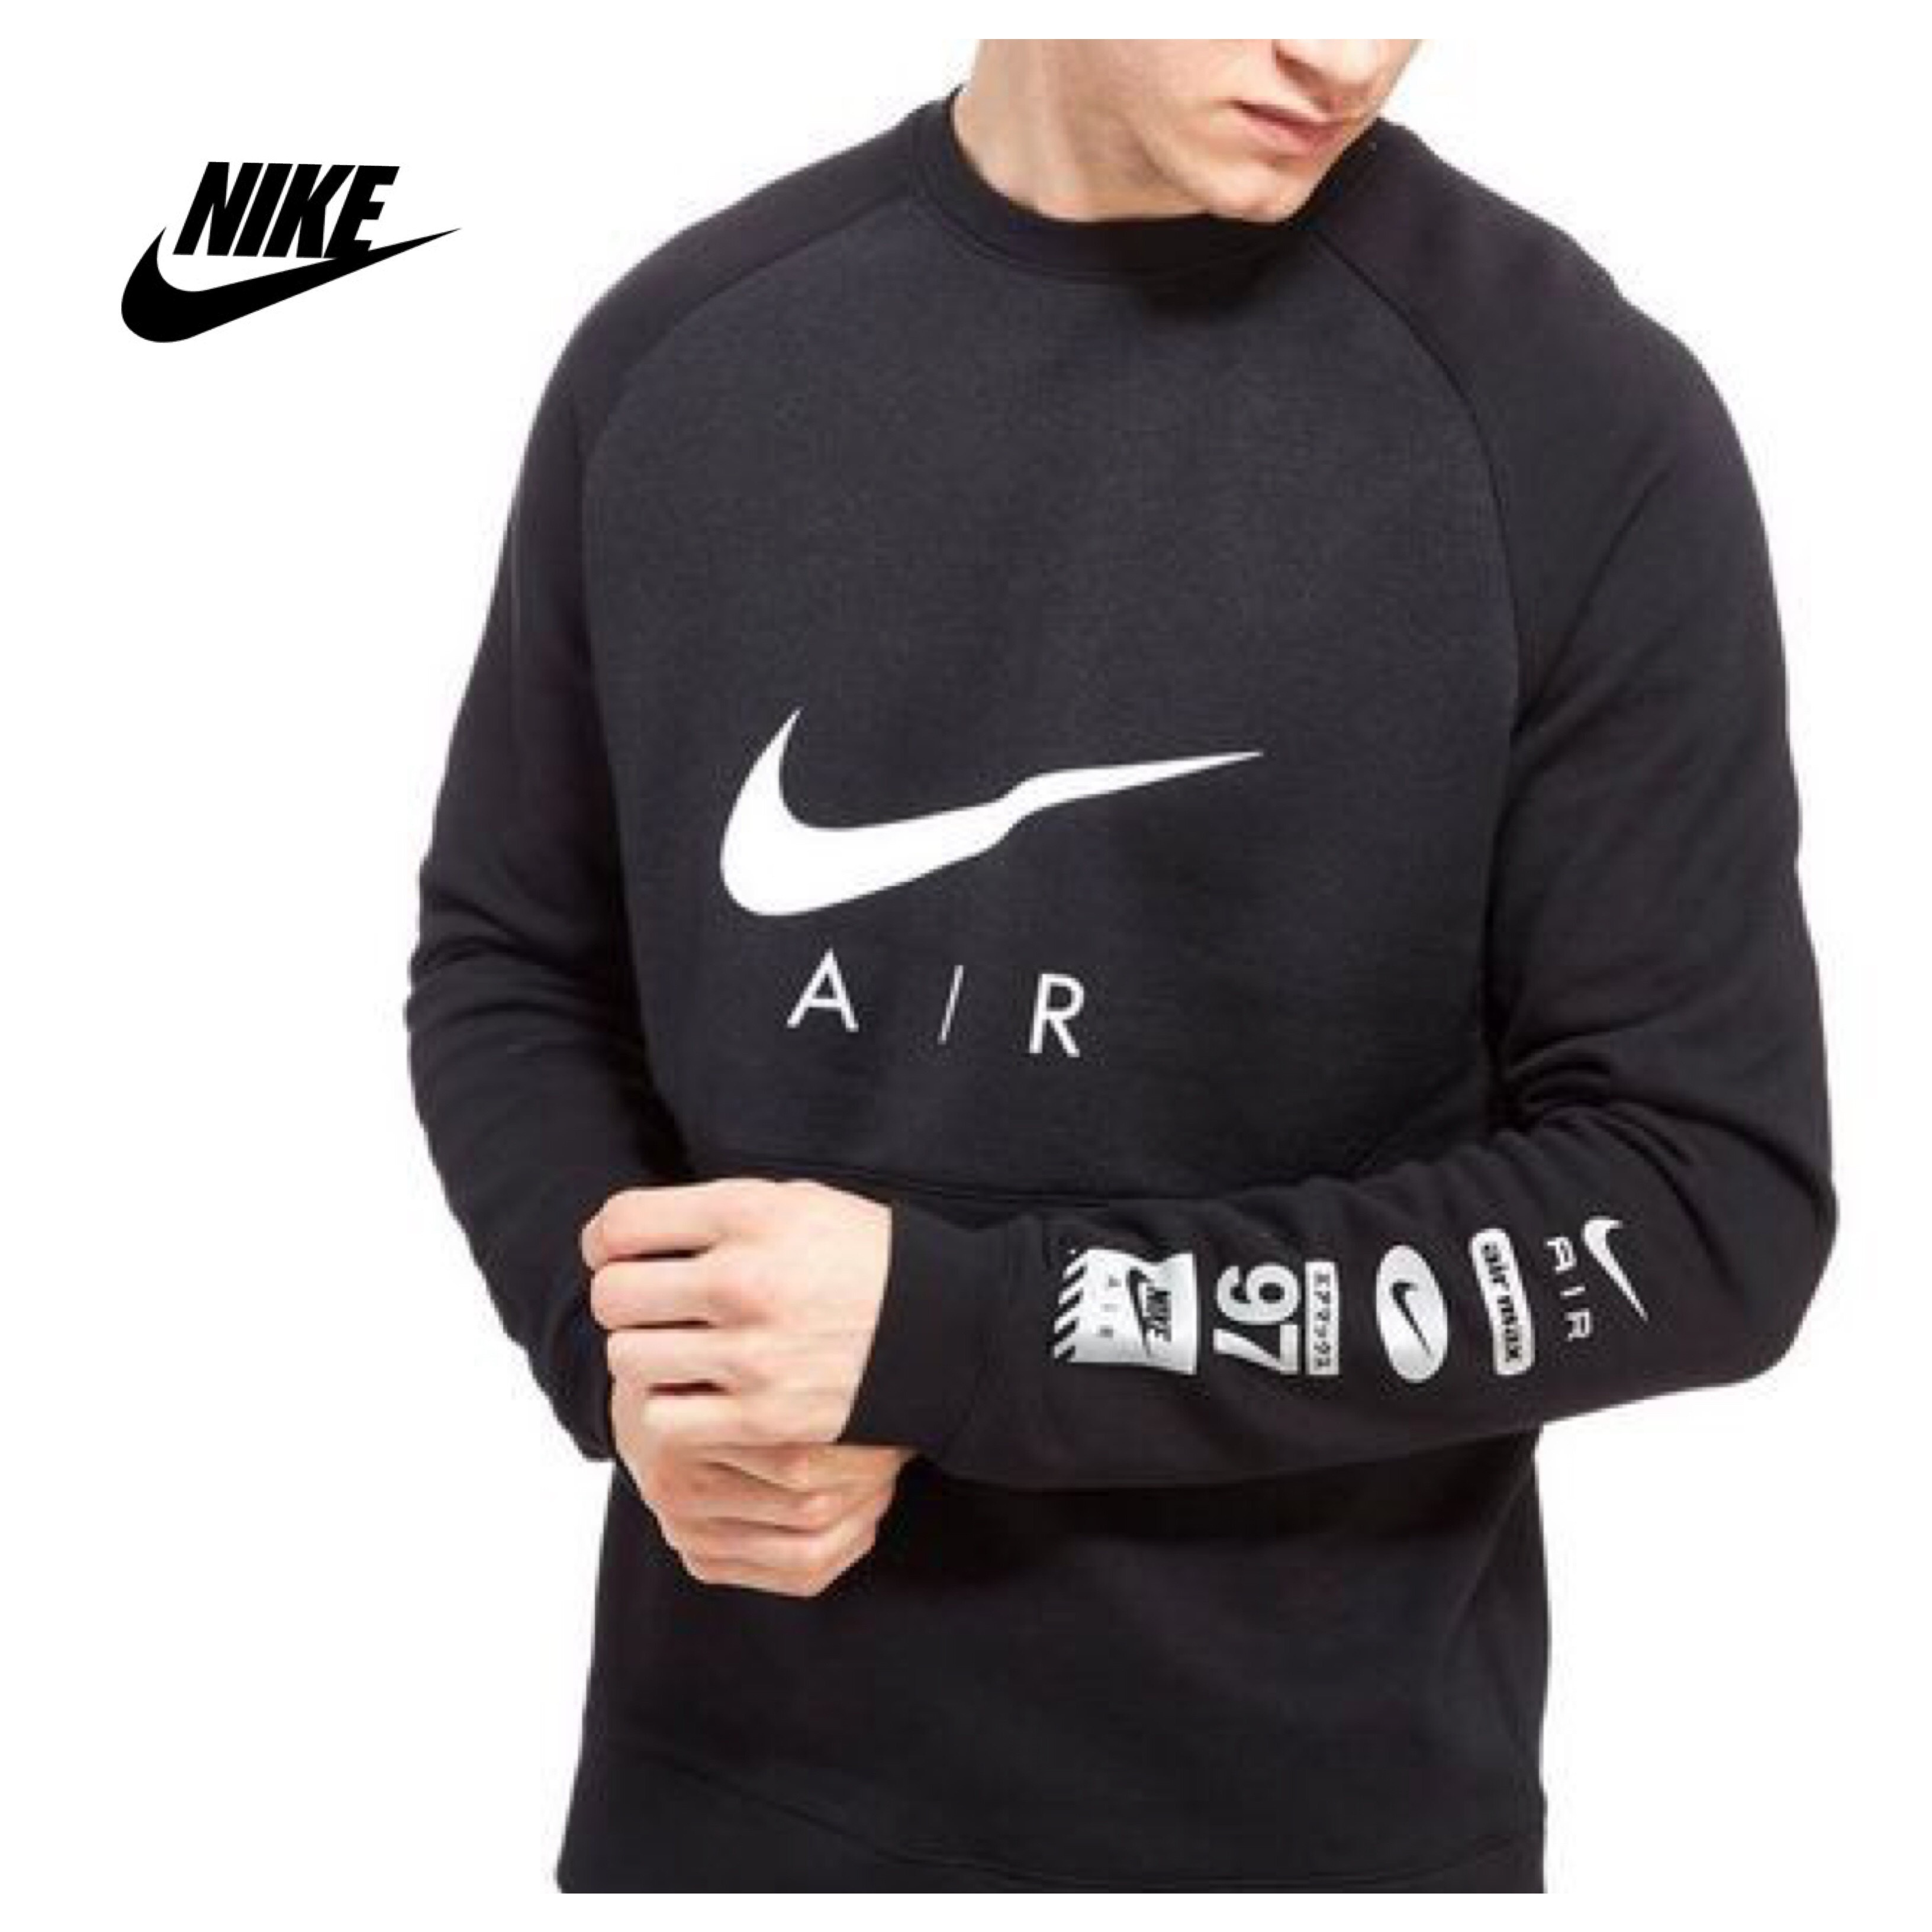 Nike Air Hybrid Crew Sweatshirt Black